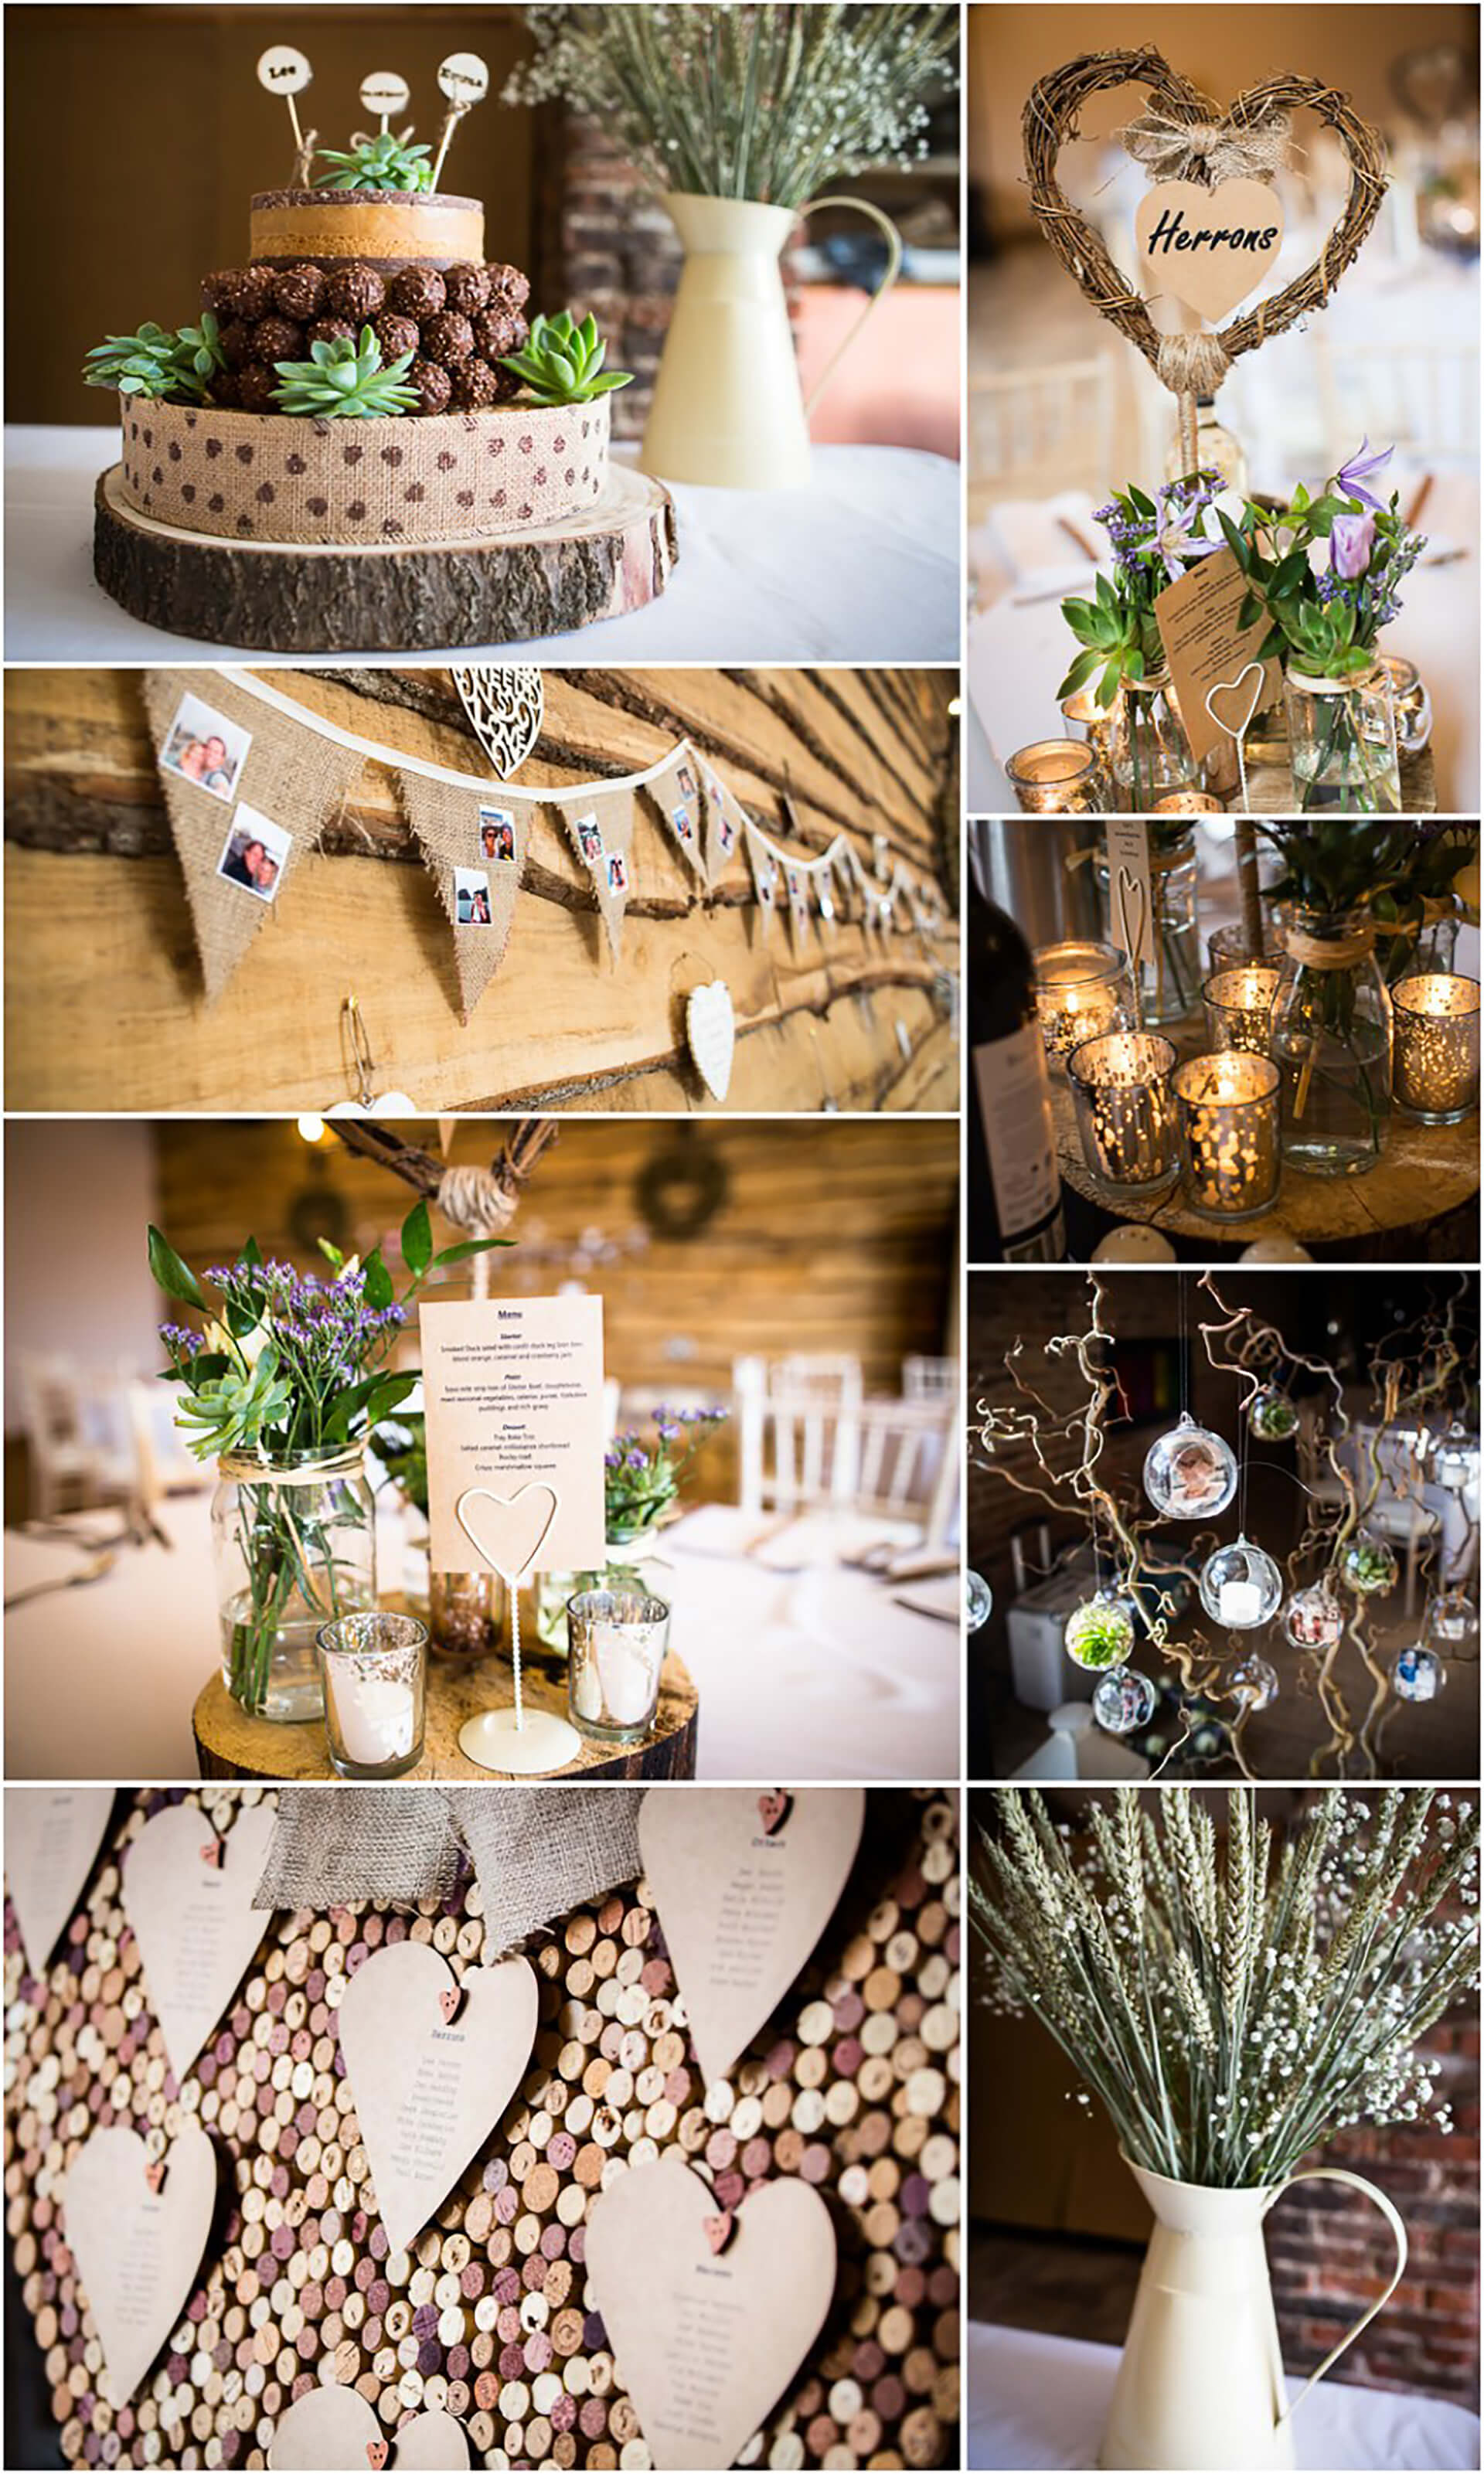 "A beautiful collage from Emma and Lee's wedding curtesy of <a href=""http://www.kmattssonphotography.com/"" target=""_blank"">Kirsty Mattsson</a>."